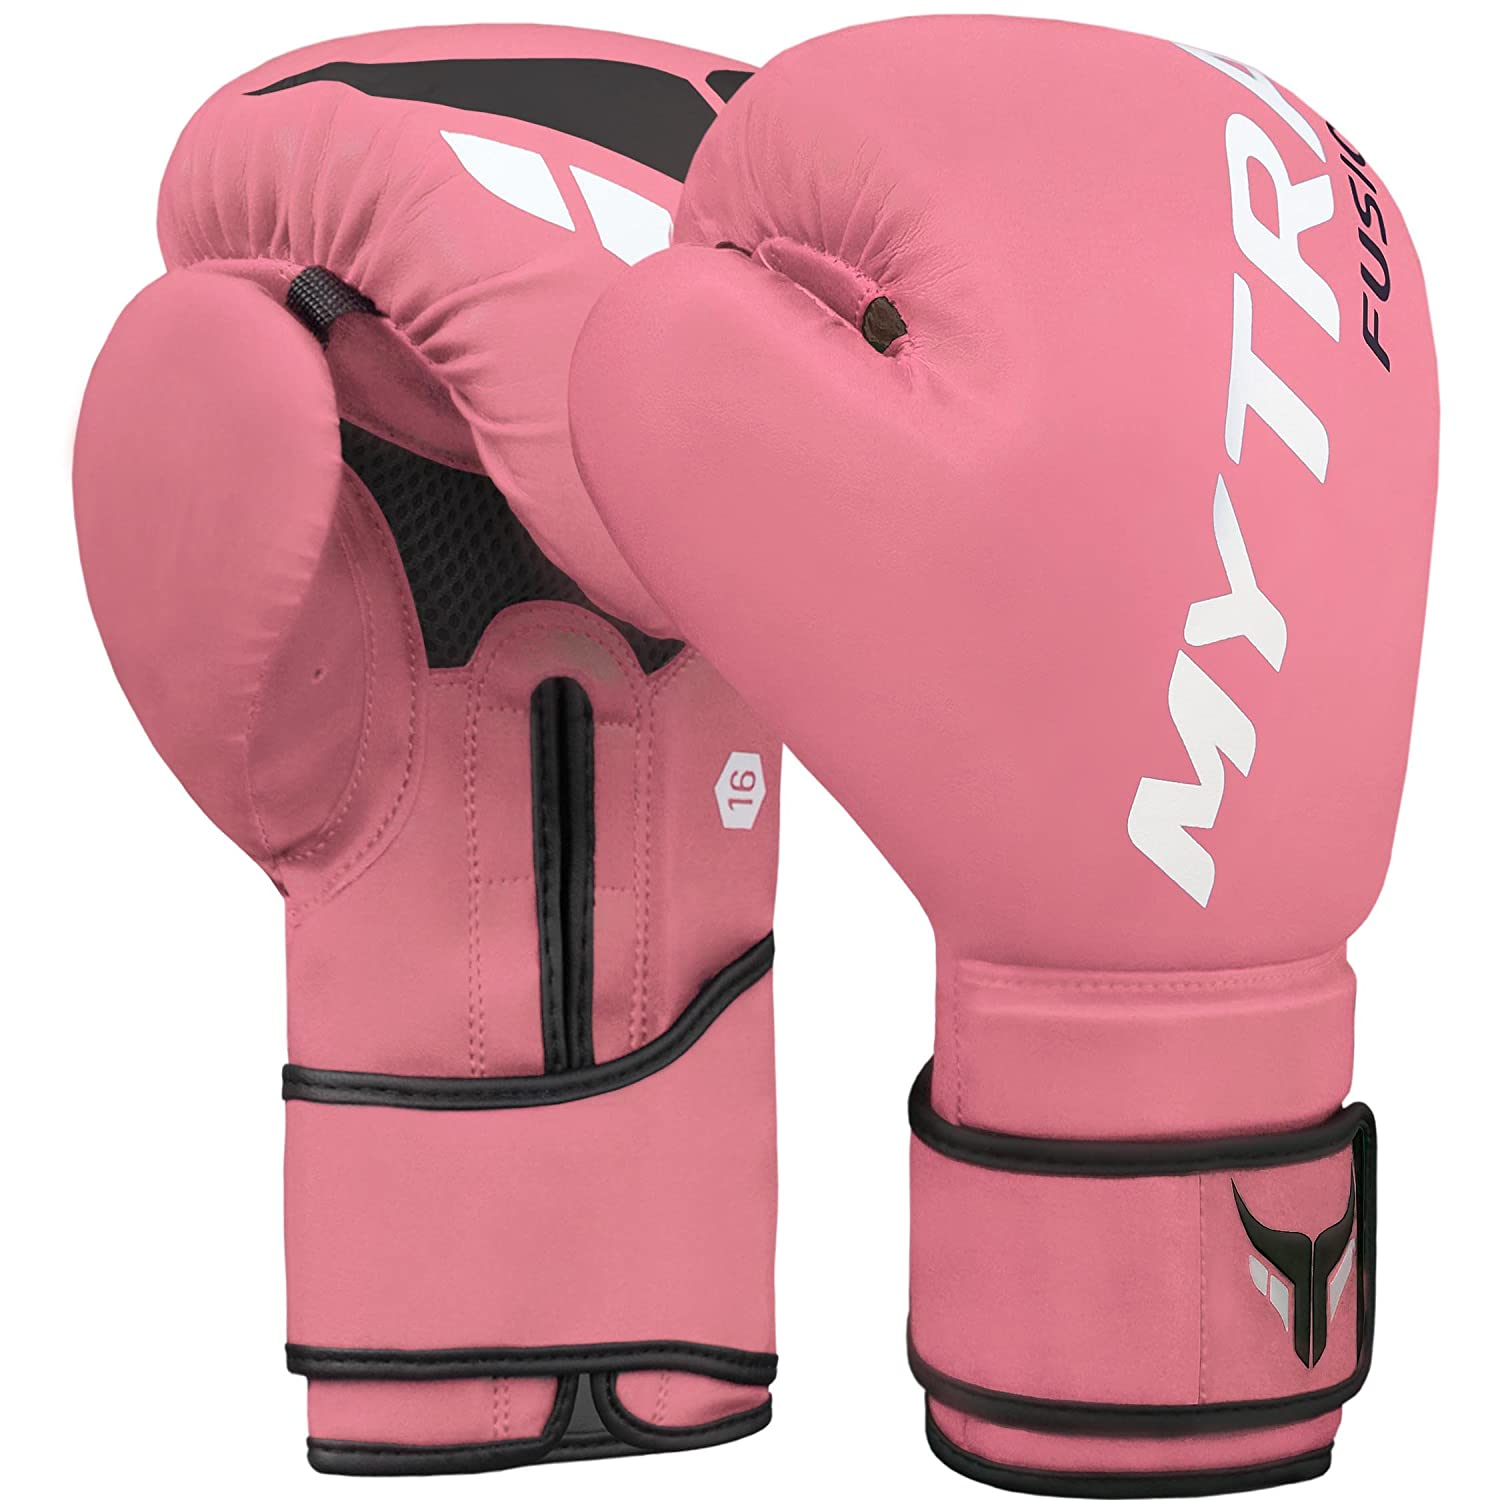 Mytra Fusion Real Tech Boxing Gloves Synthetic Leather Boxing Gloves